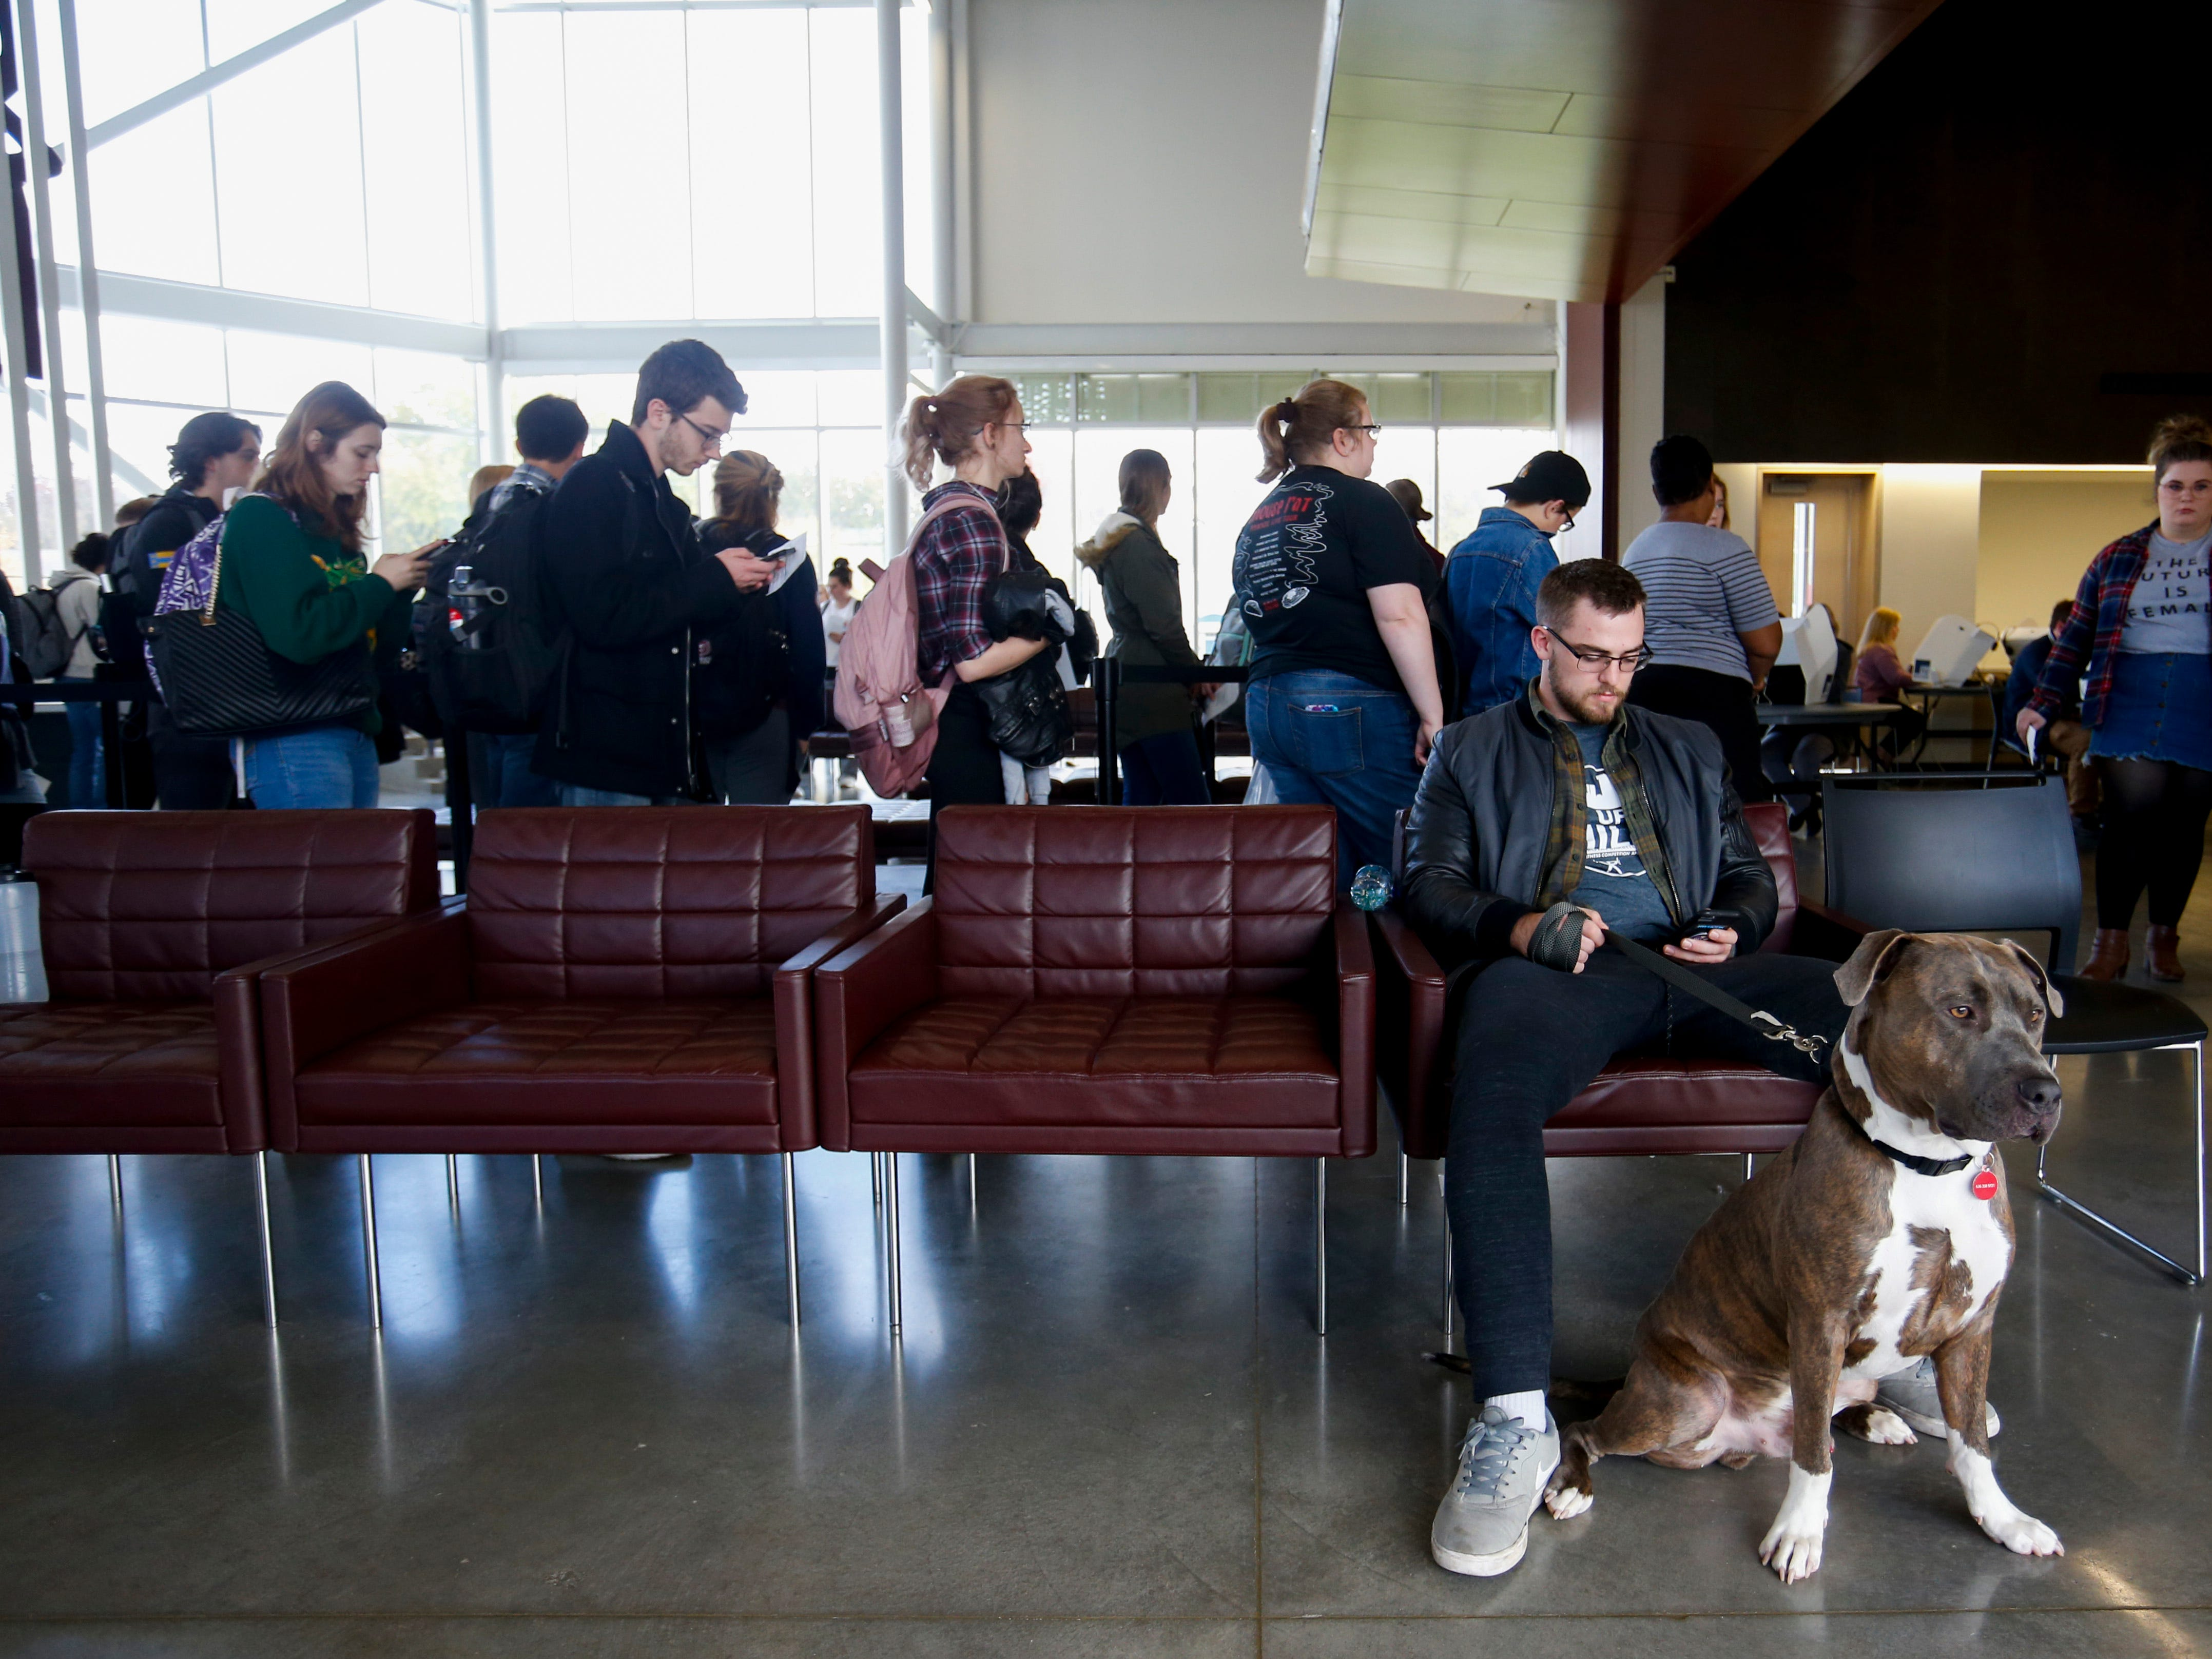 Brett Kellock waits with his dog Tormuned for his girlfriend to vote at the Missouri State University Davis-Harrington Welcome Center on Tuesday, Nov. 6, 2018.